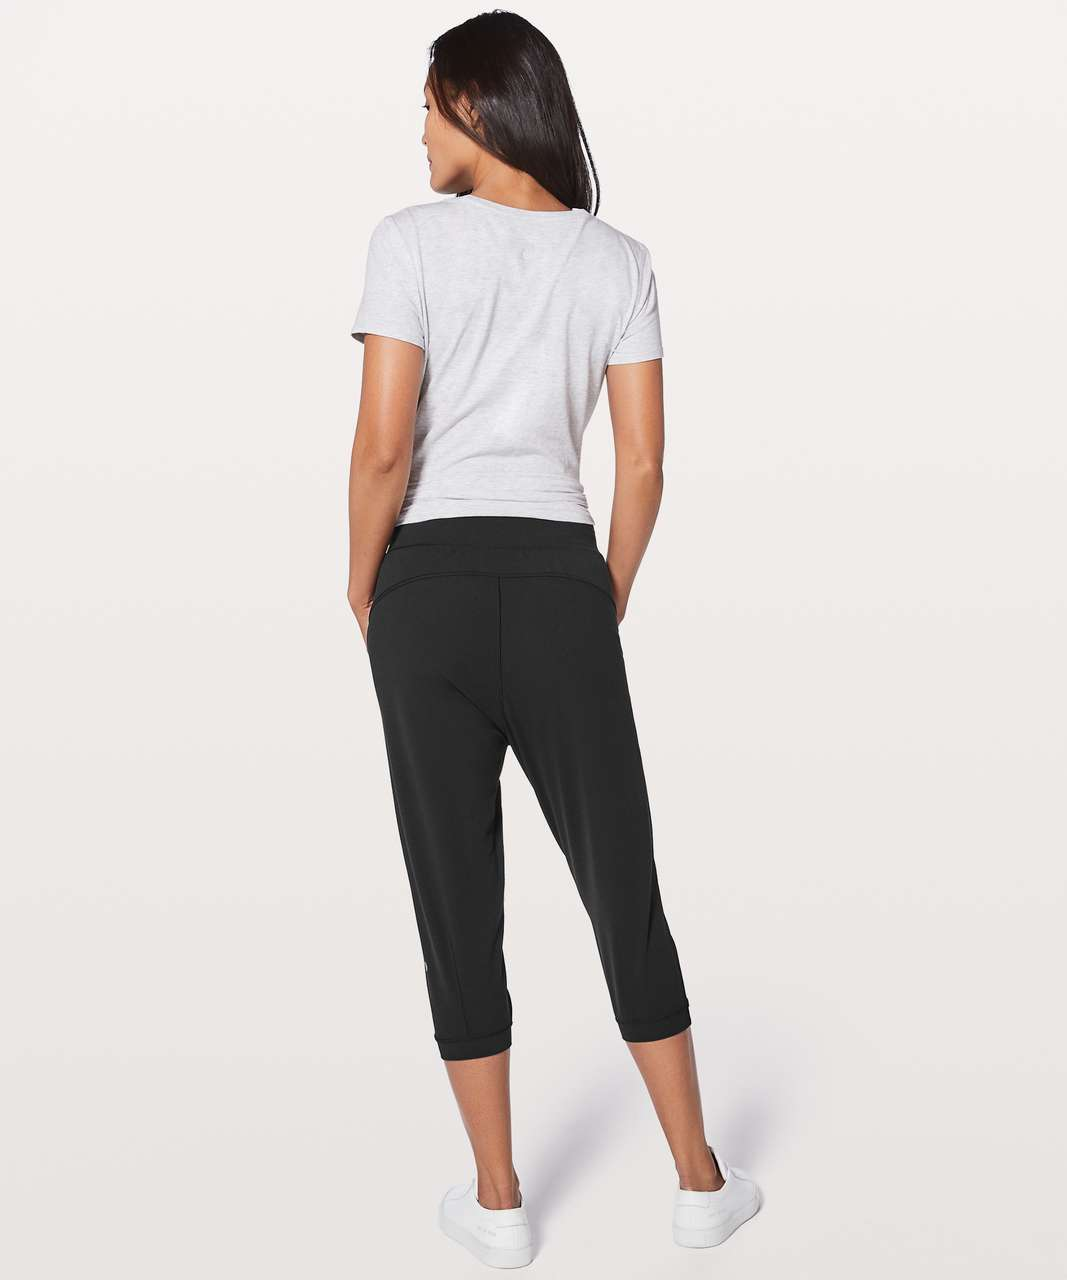 "Lululemon Rejuvenate Crop *18"" - Black"